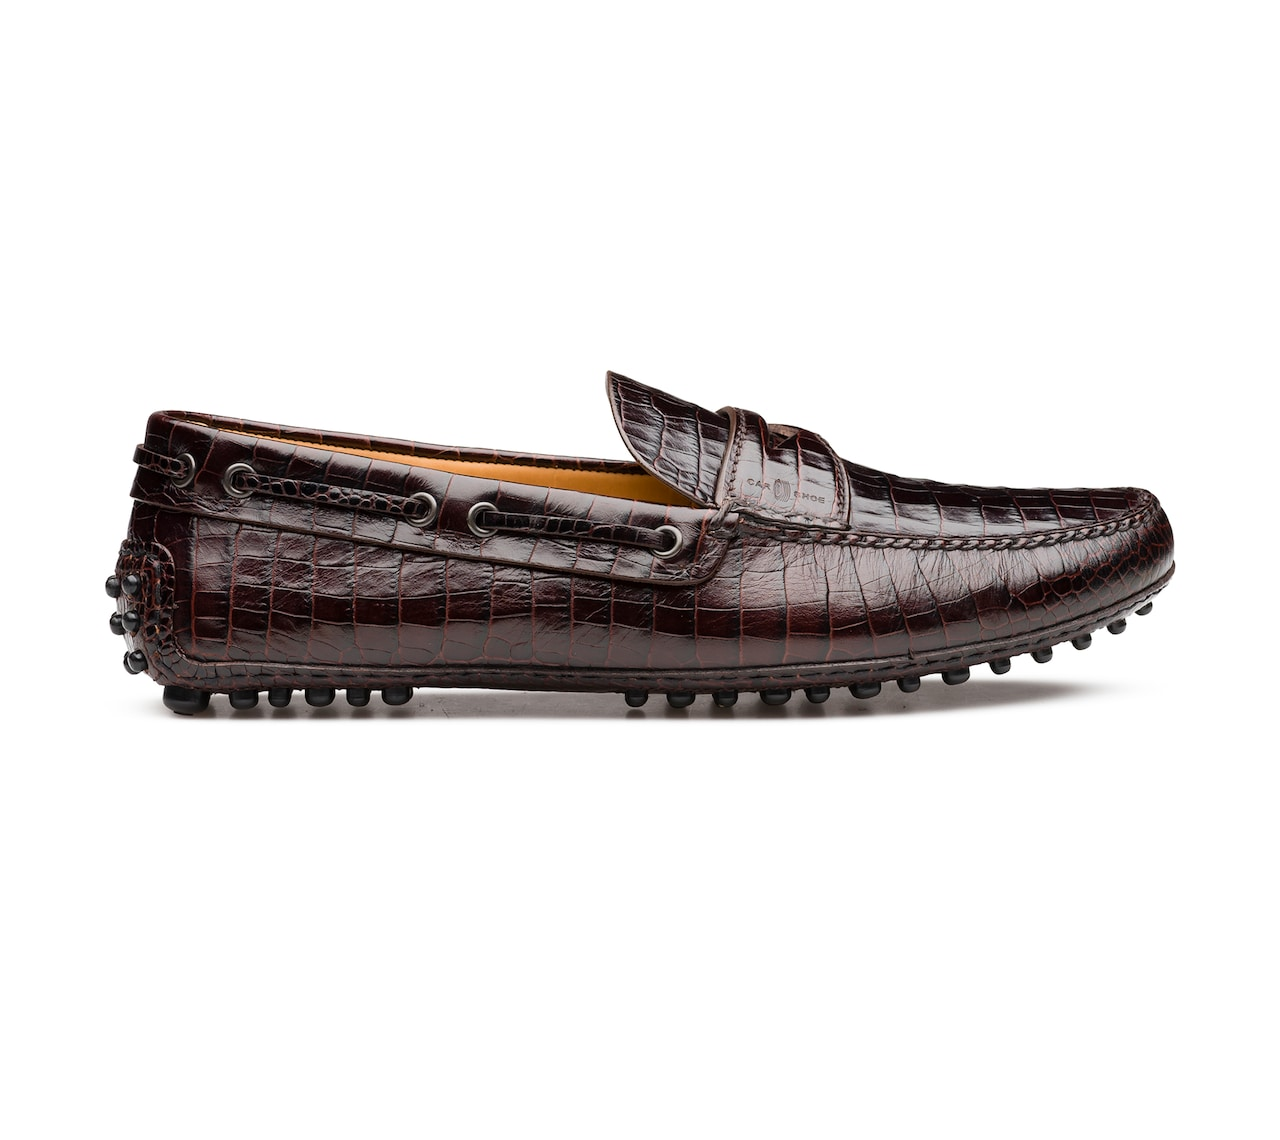 CROCO PRINTED LEATHER DRIVING SHOES BROWN